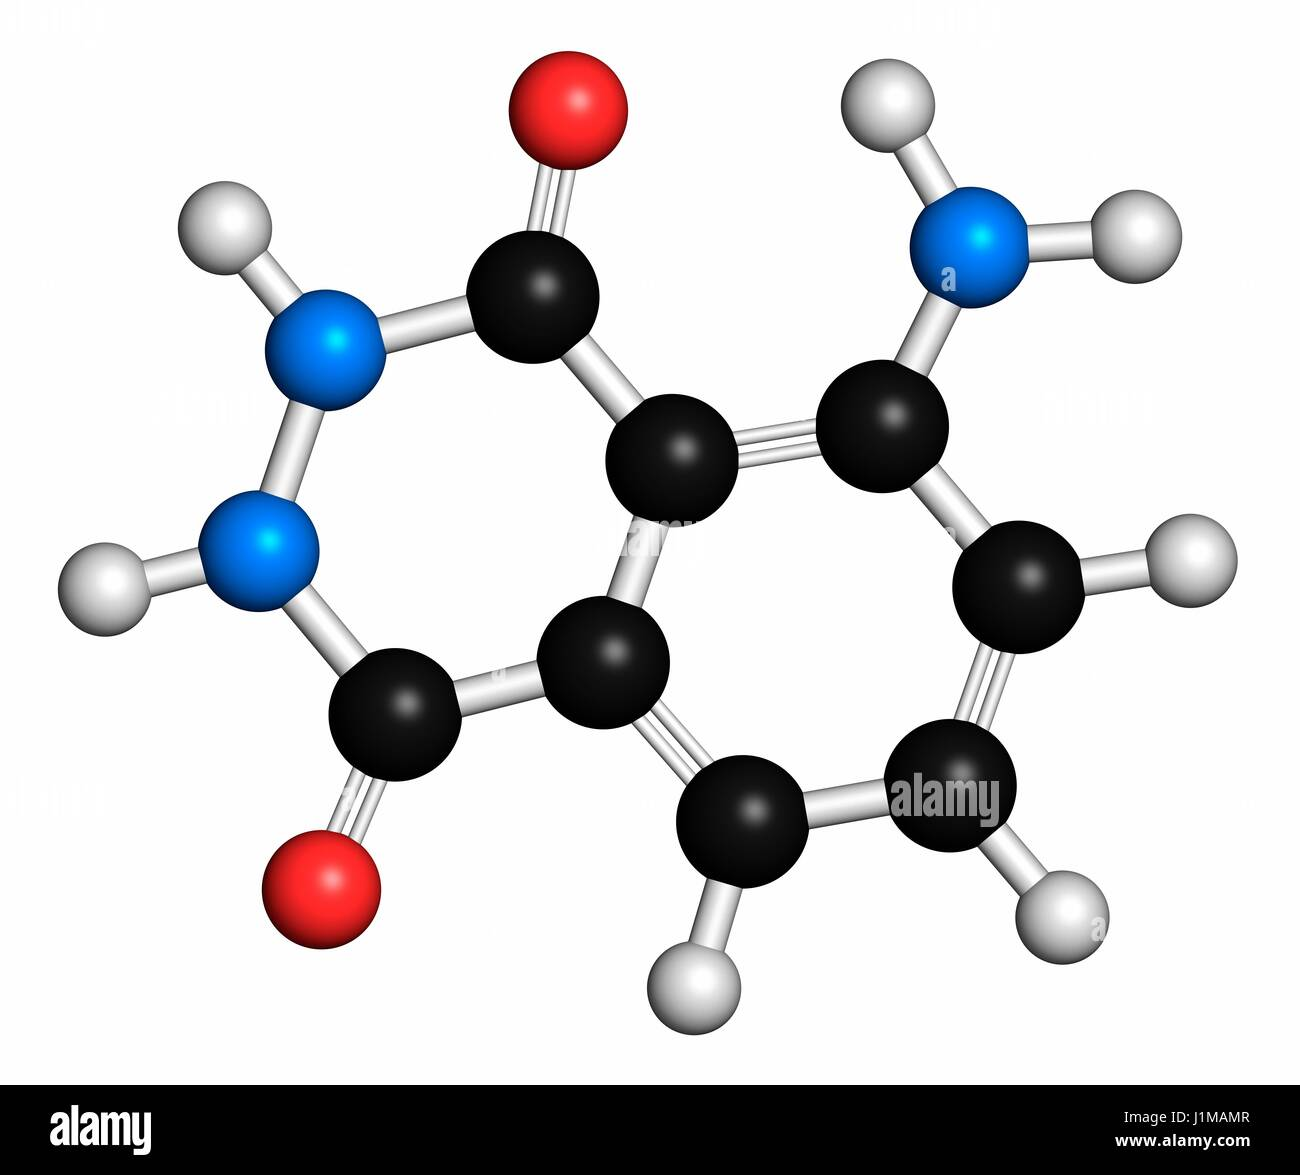 luminol a chemiluminescent compound Luminol can be prepared from 3-nitrophthalic acid by treatment with hydrazine followed by reduction of the first product by sodium dithionite.